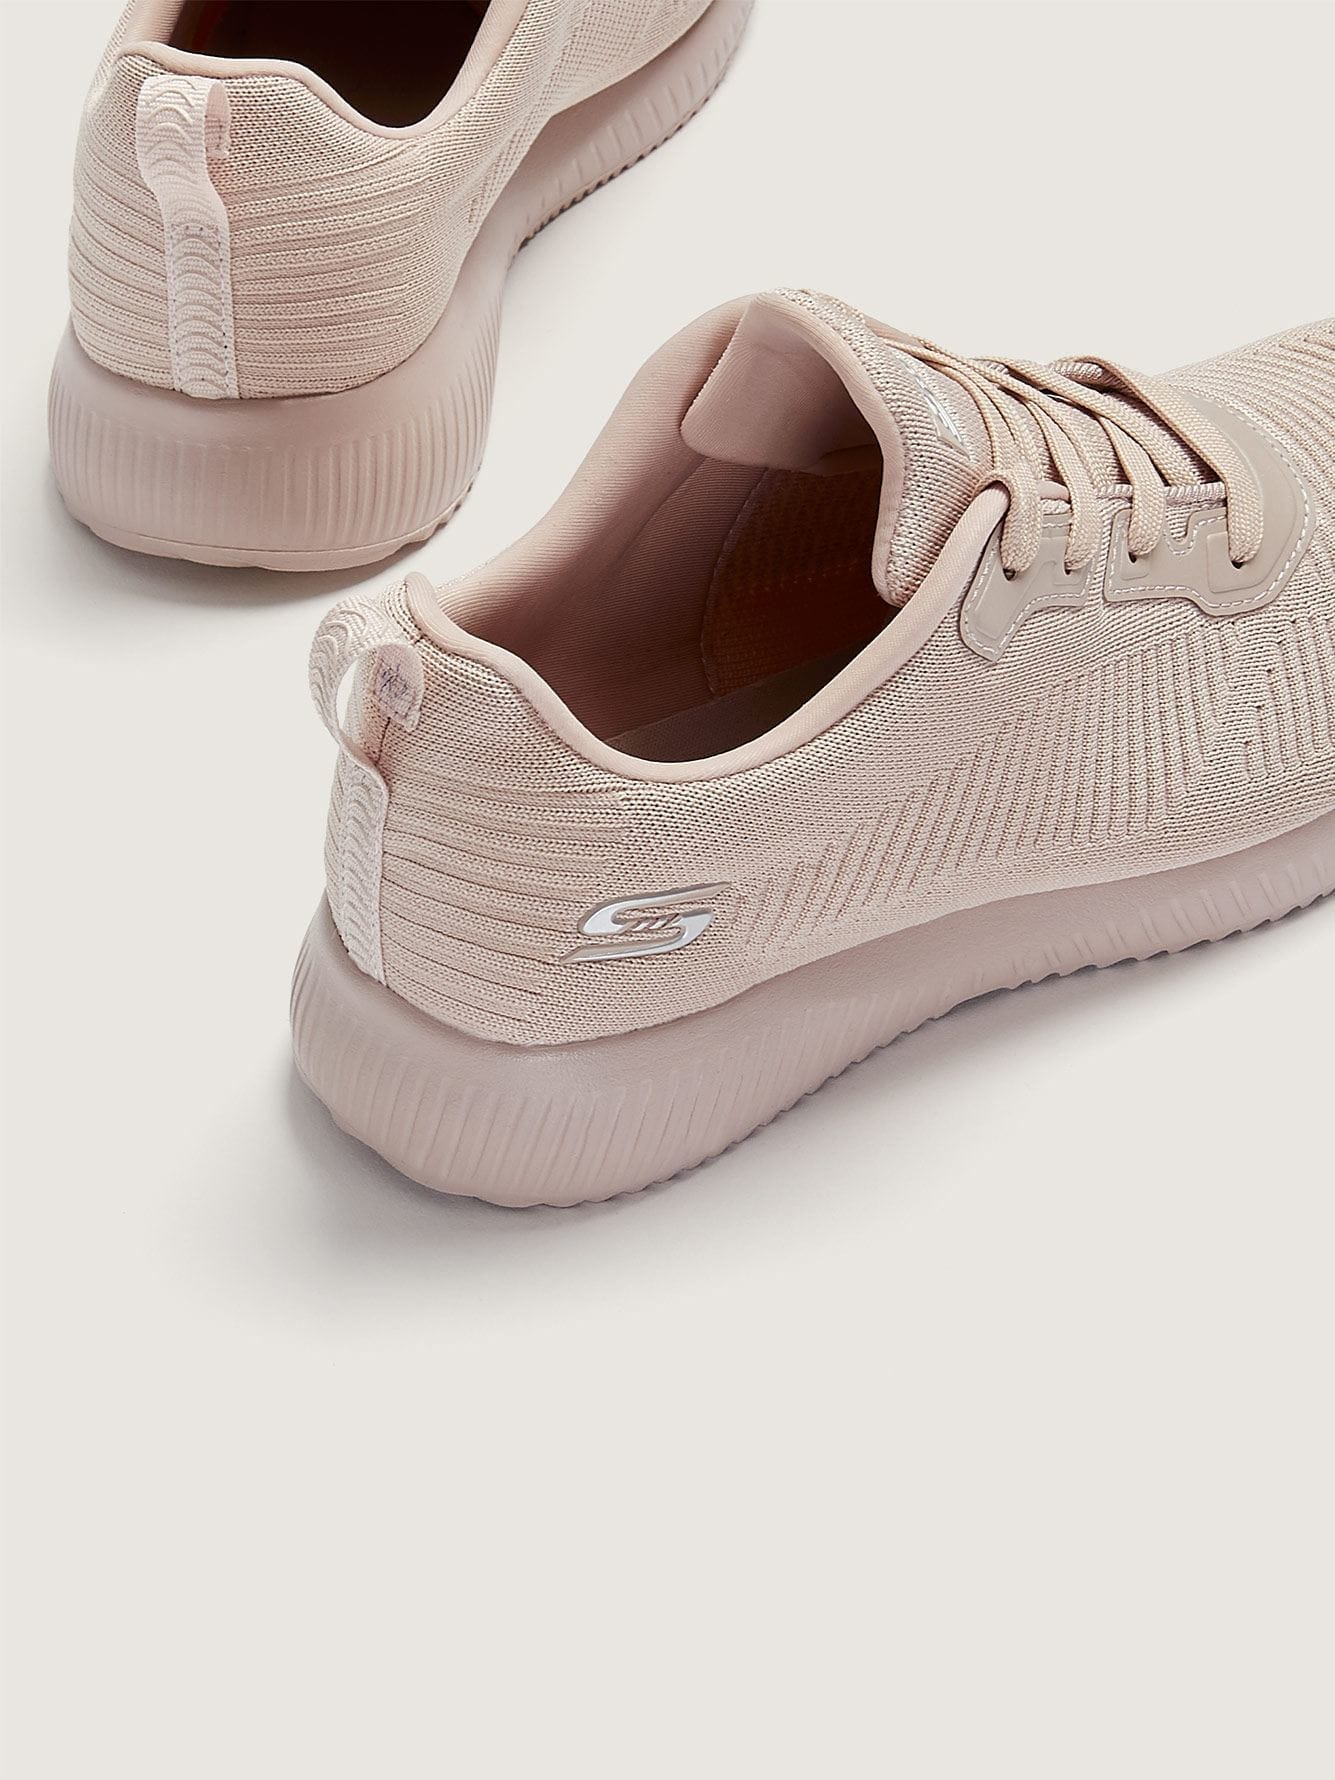 Wide BOBS Sneakers - Skechers